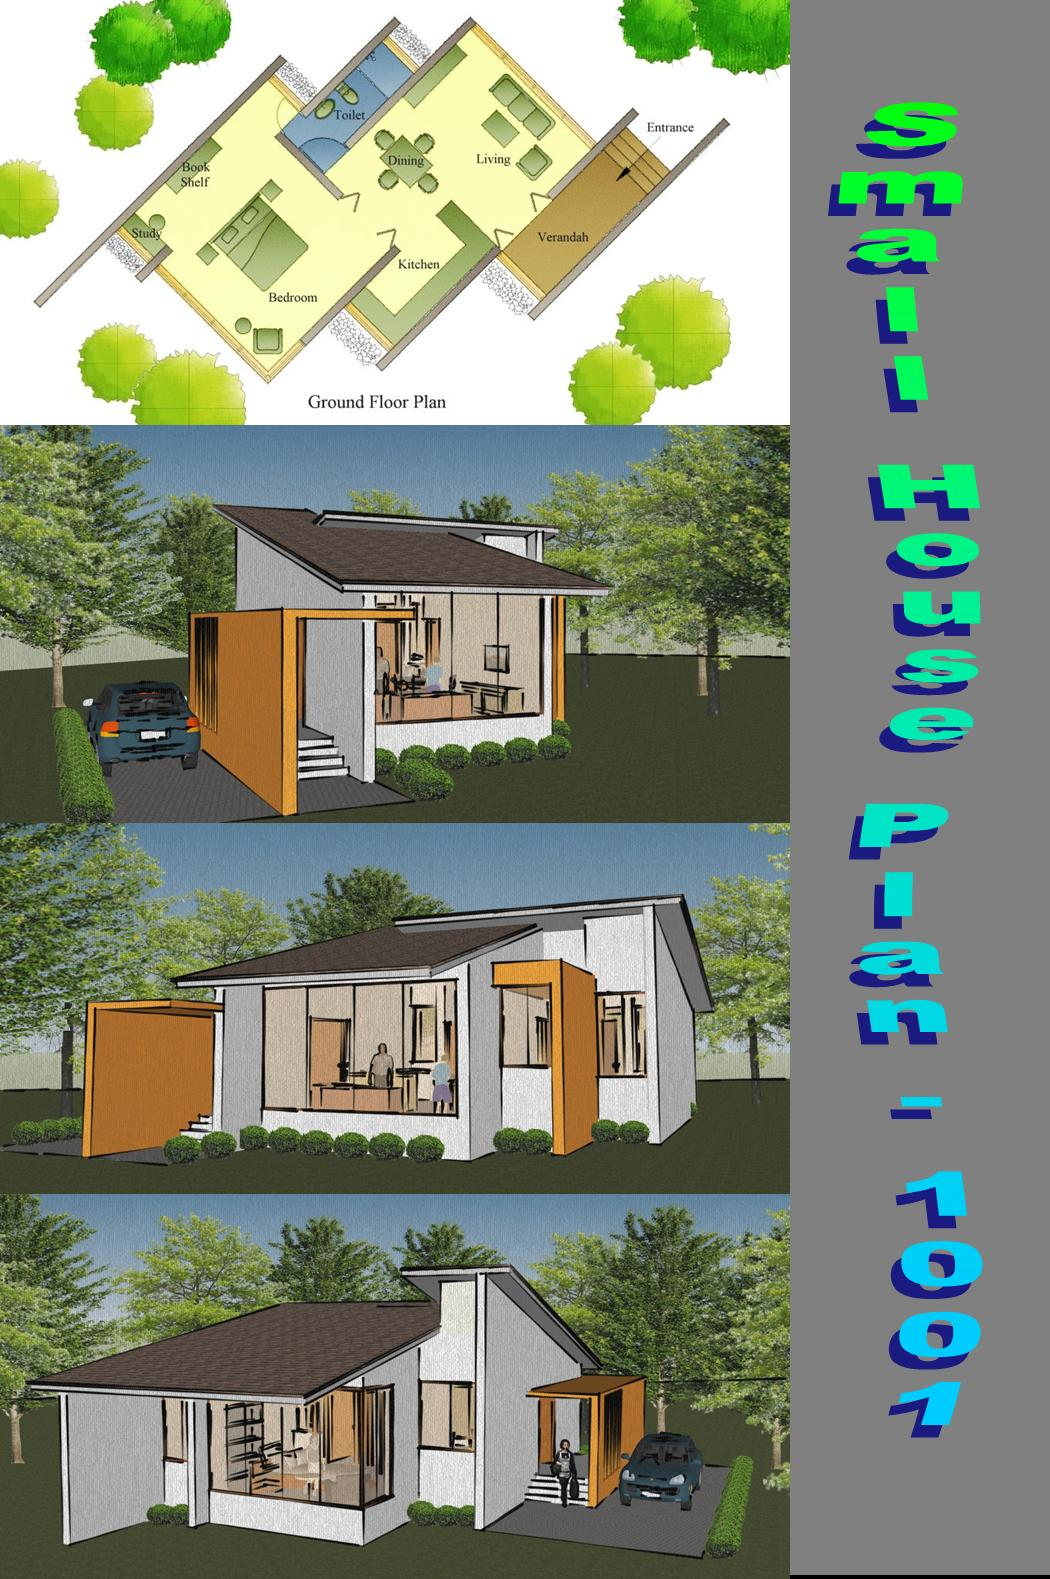 Home plans in india 5 best small home plans from for Favorite house plans